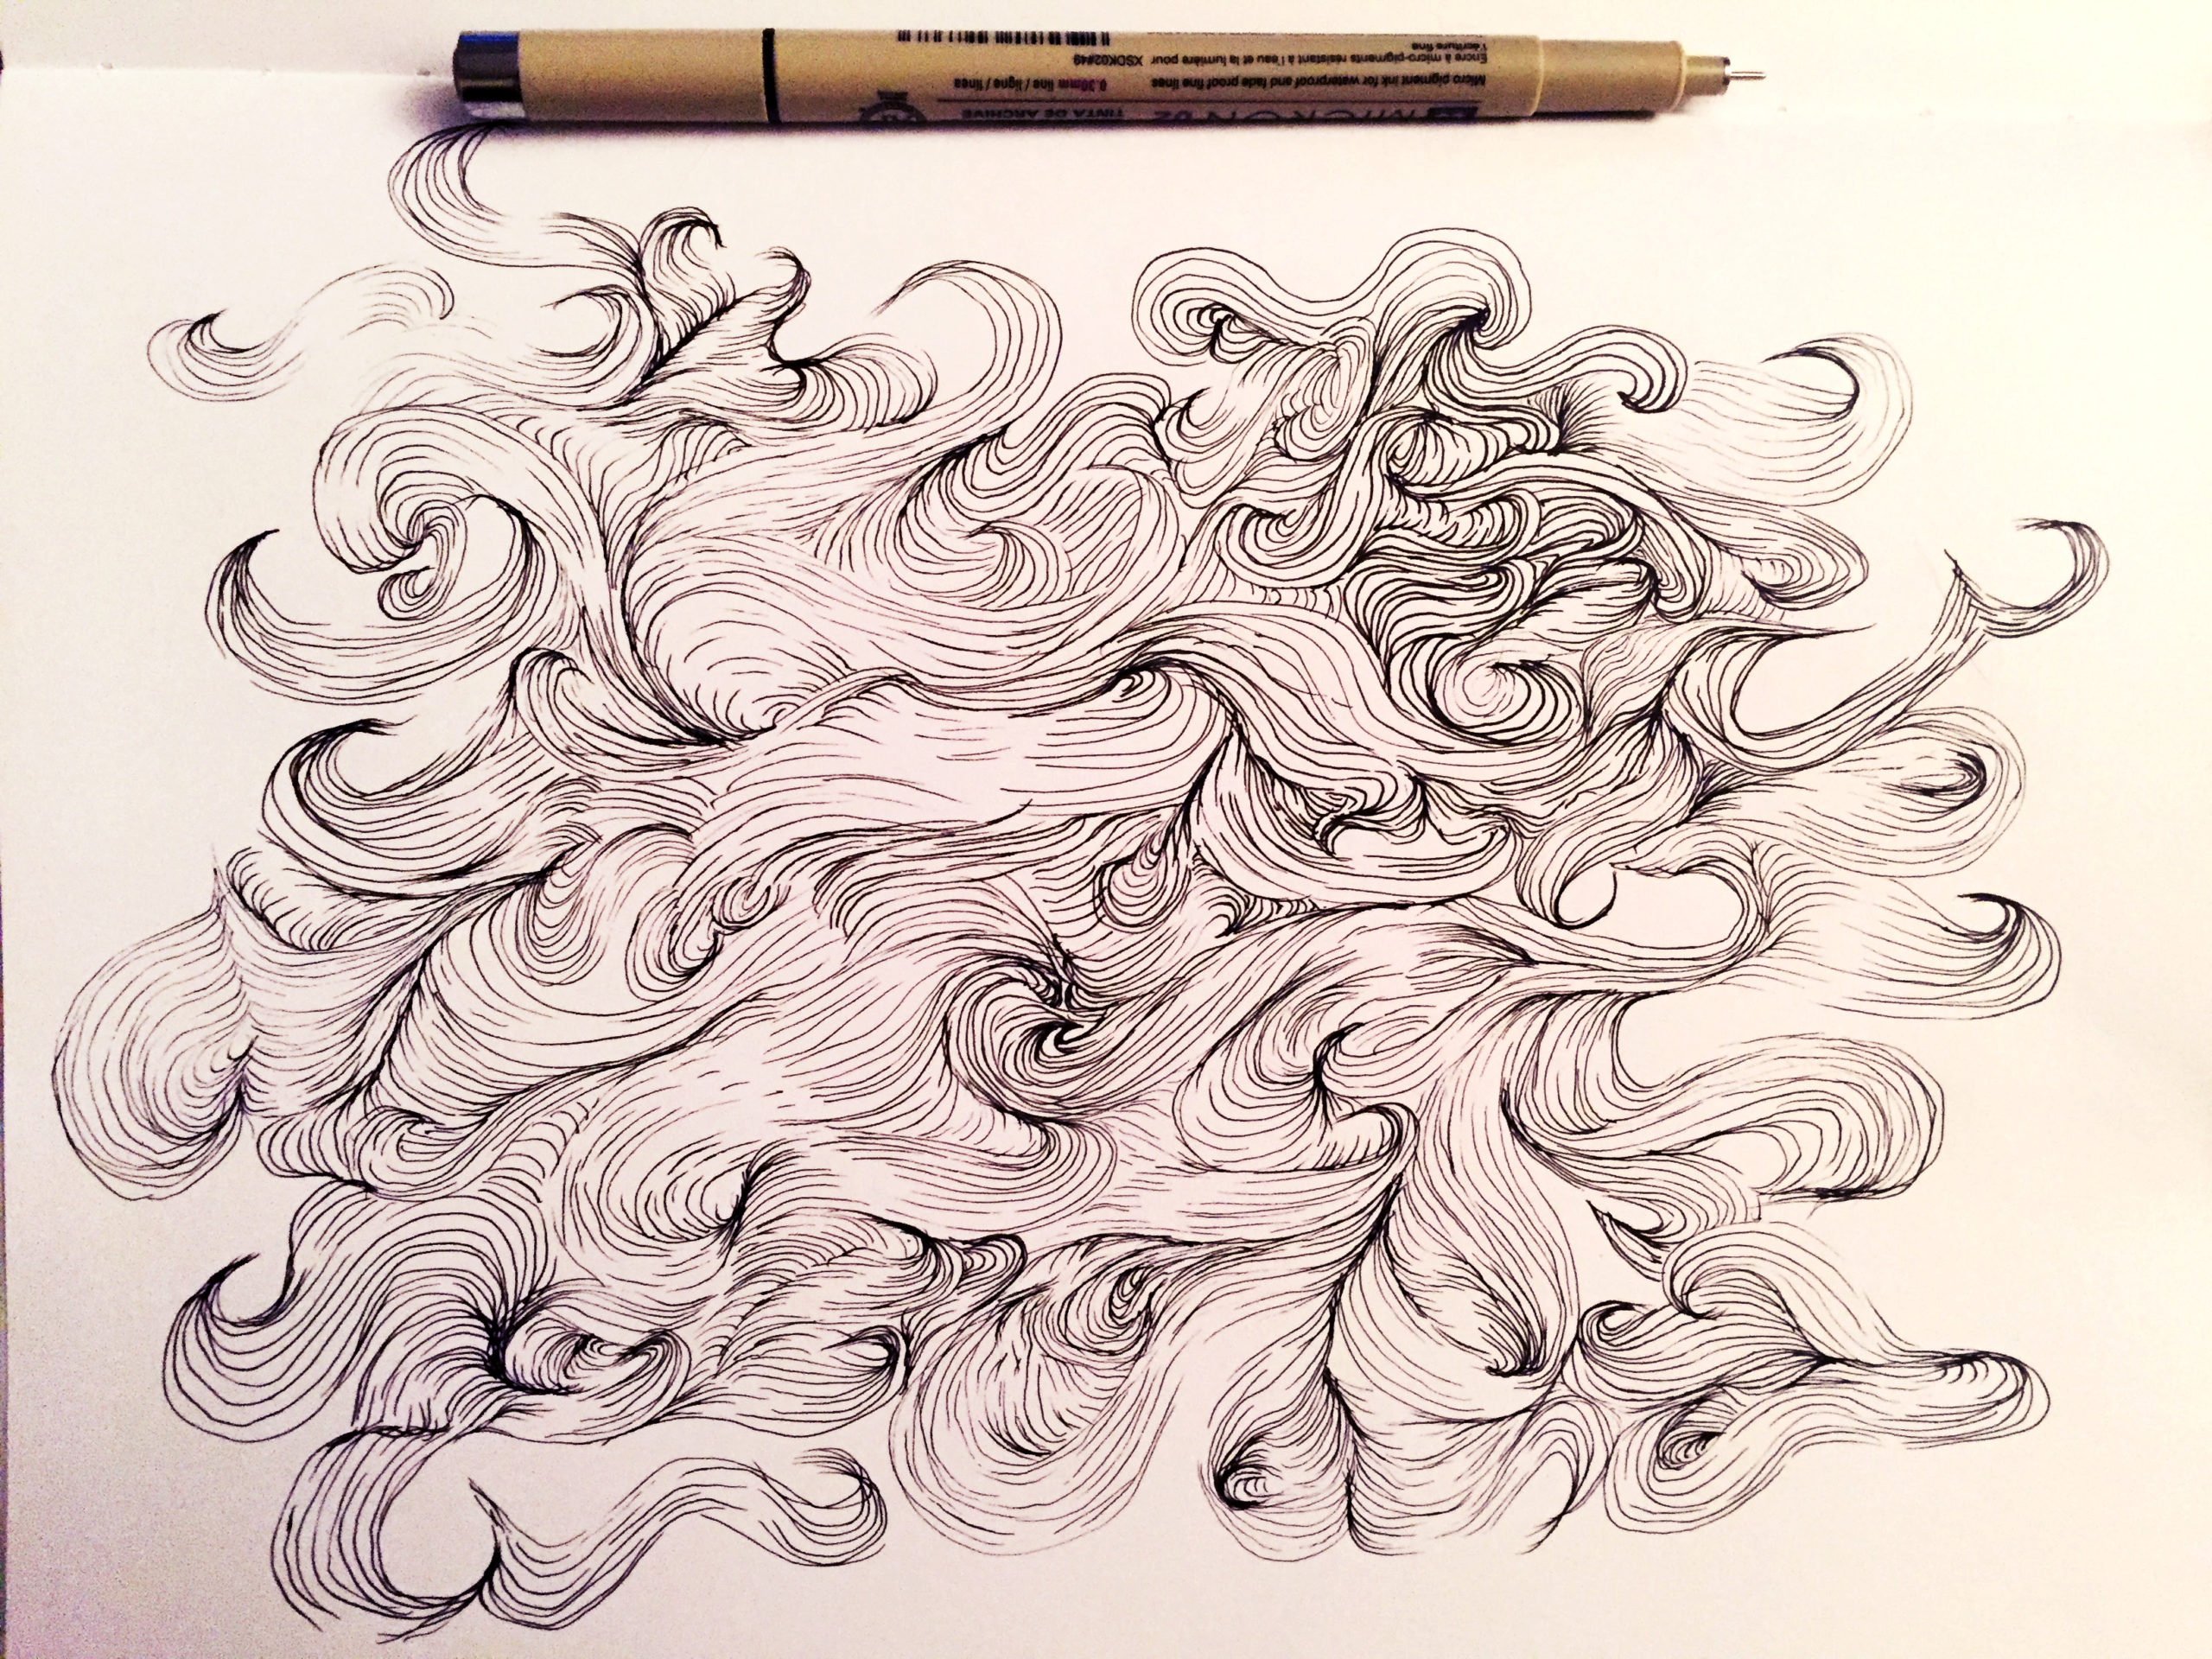 lines in the shape of wind